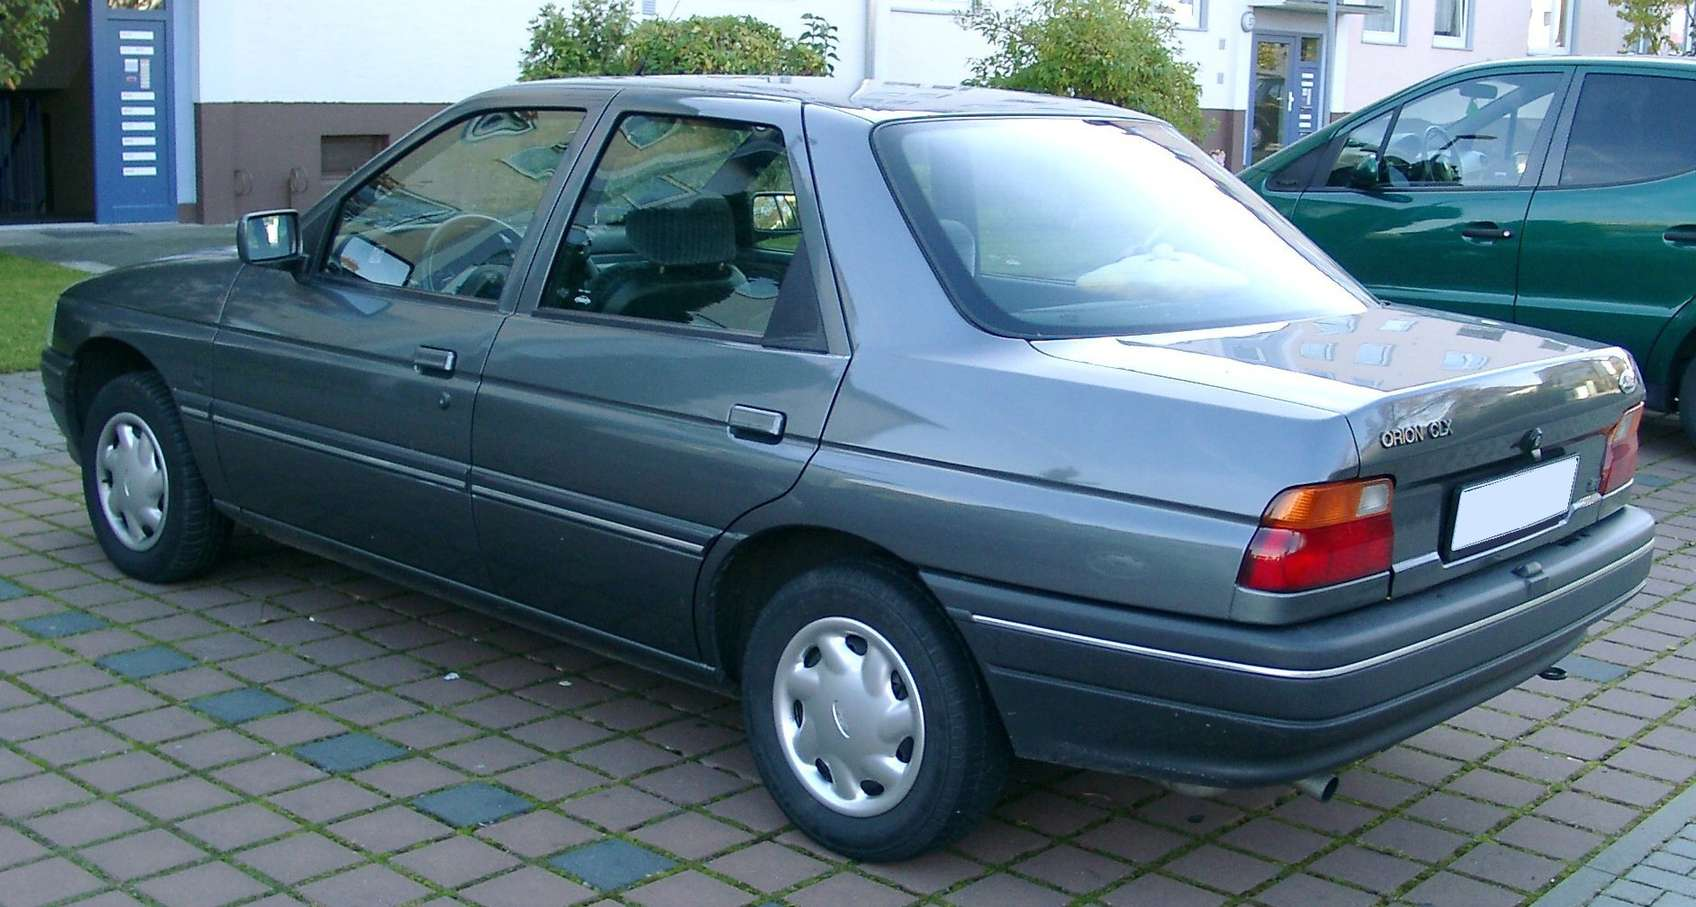 Ford Orion #8557971